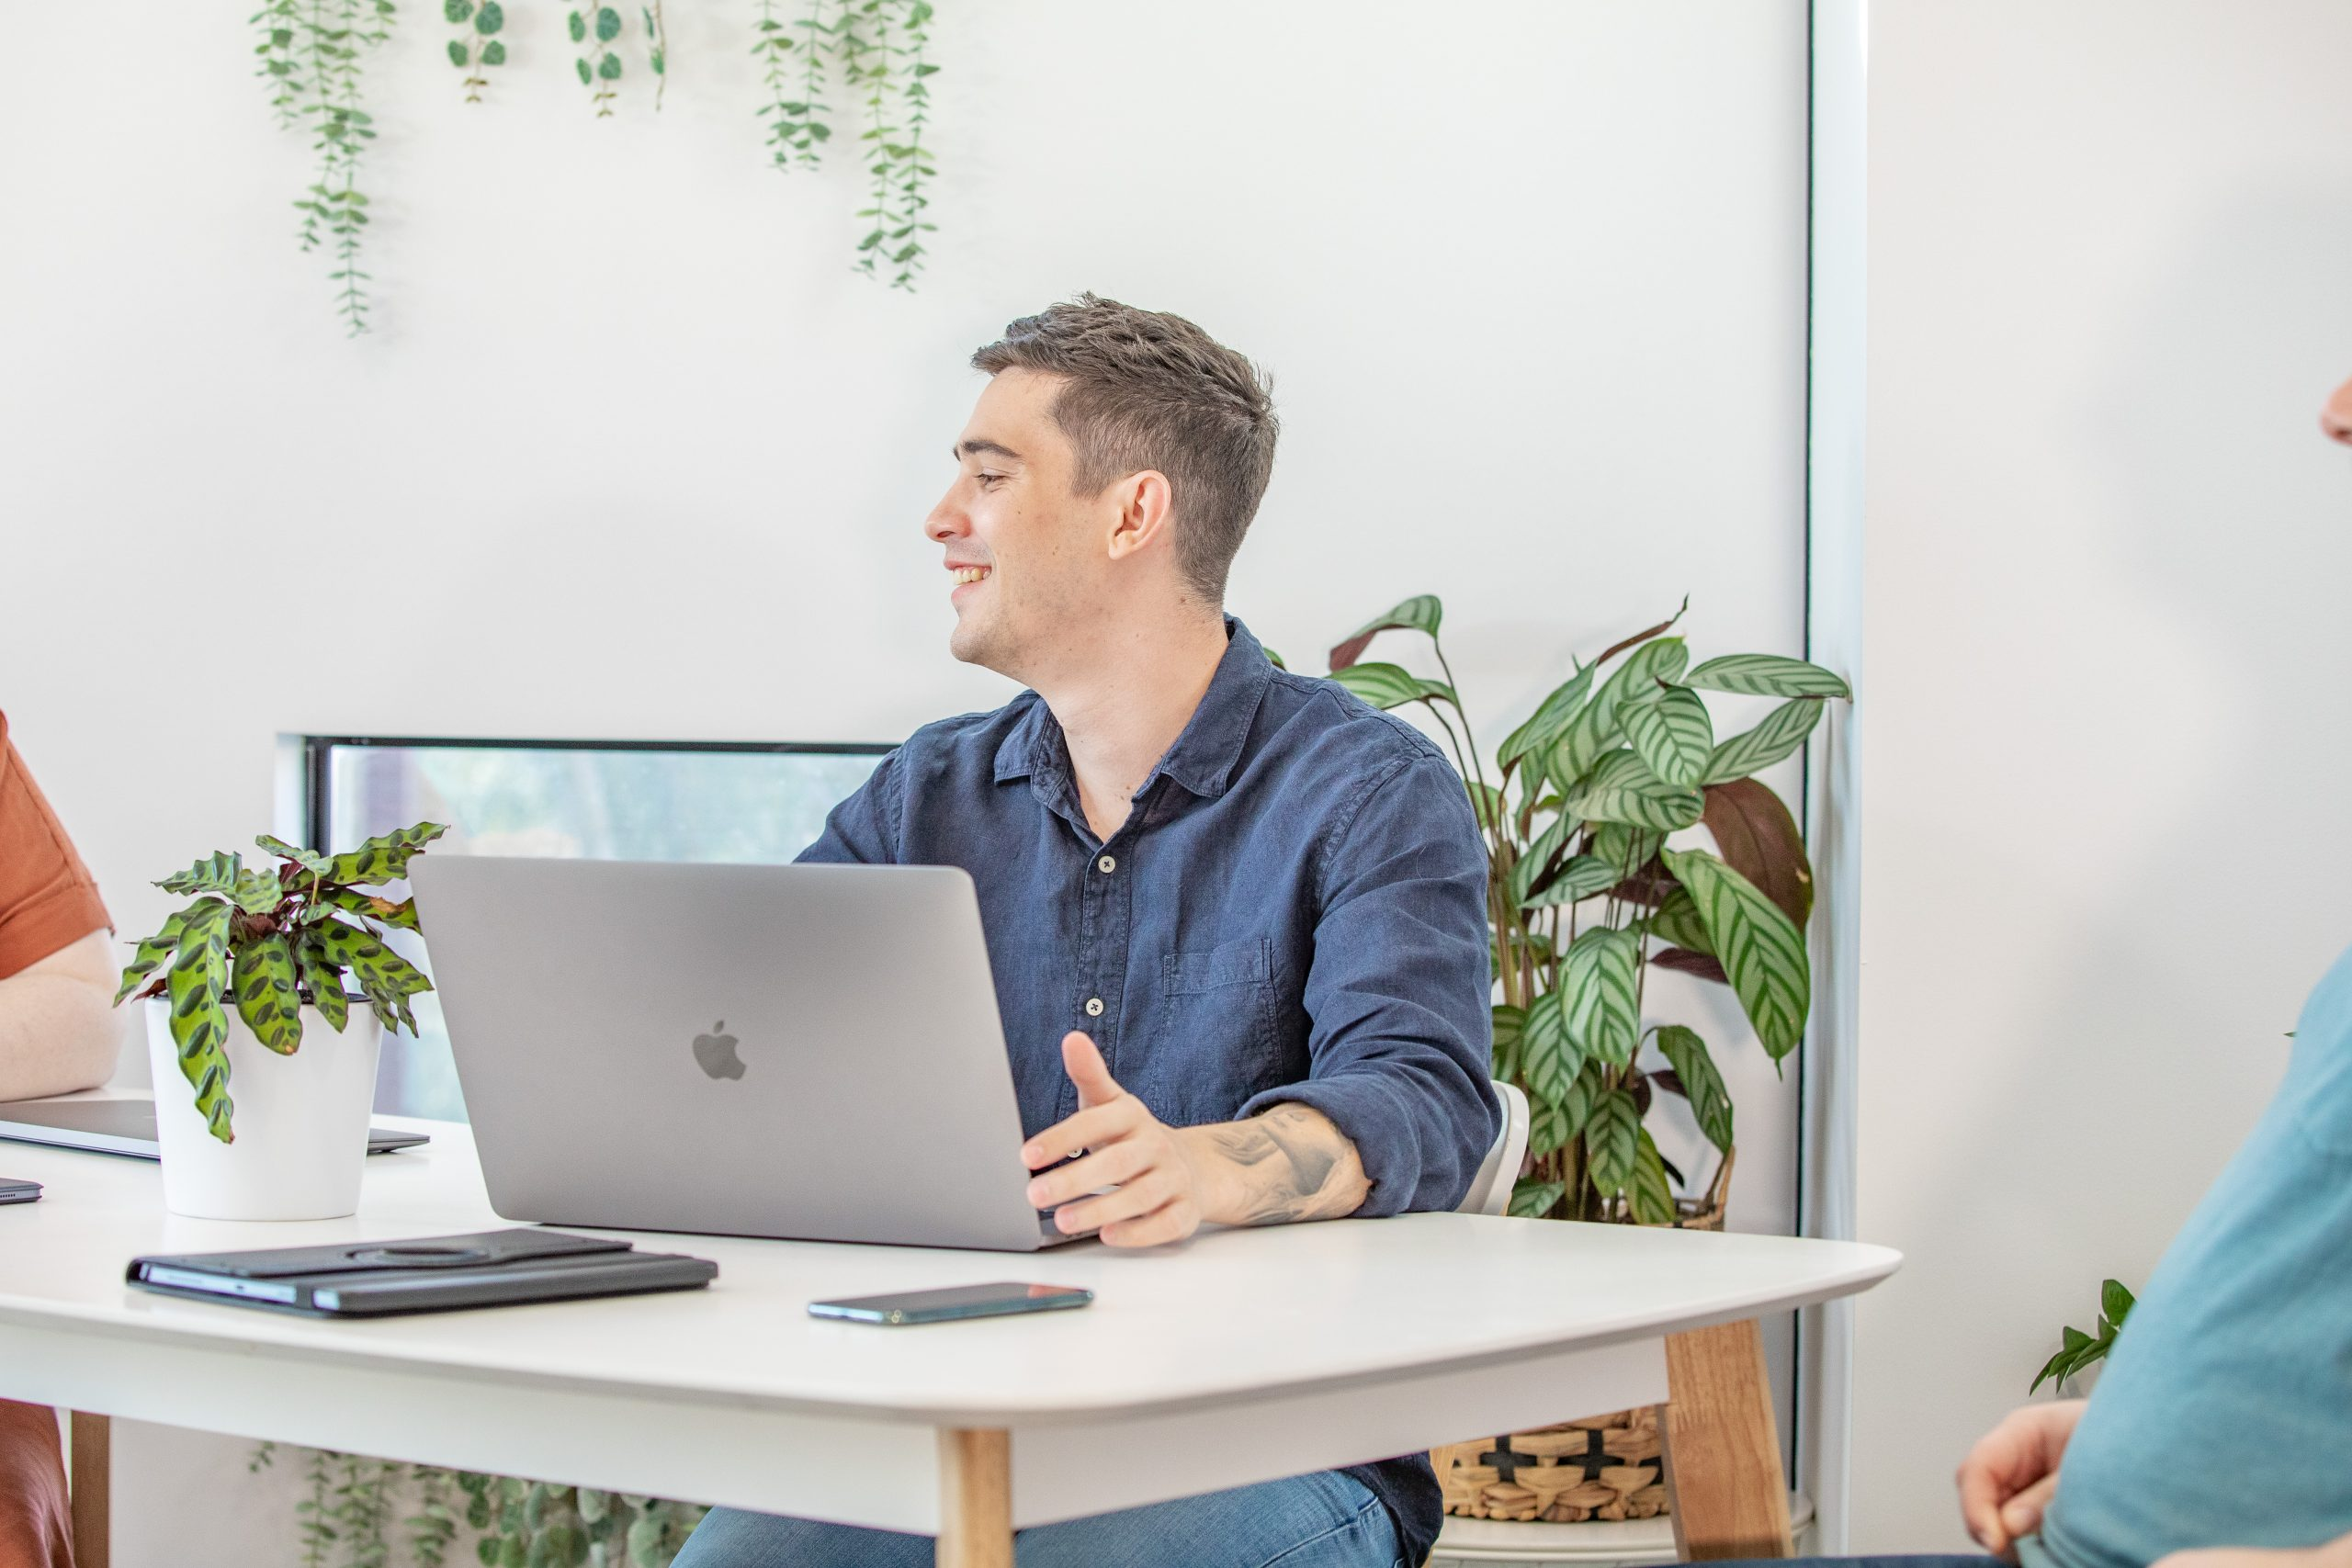 Web Design Melbourne - member of the DNHQ team using a laptop at a desk